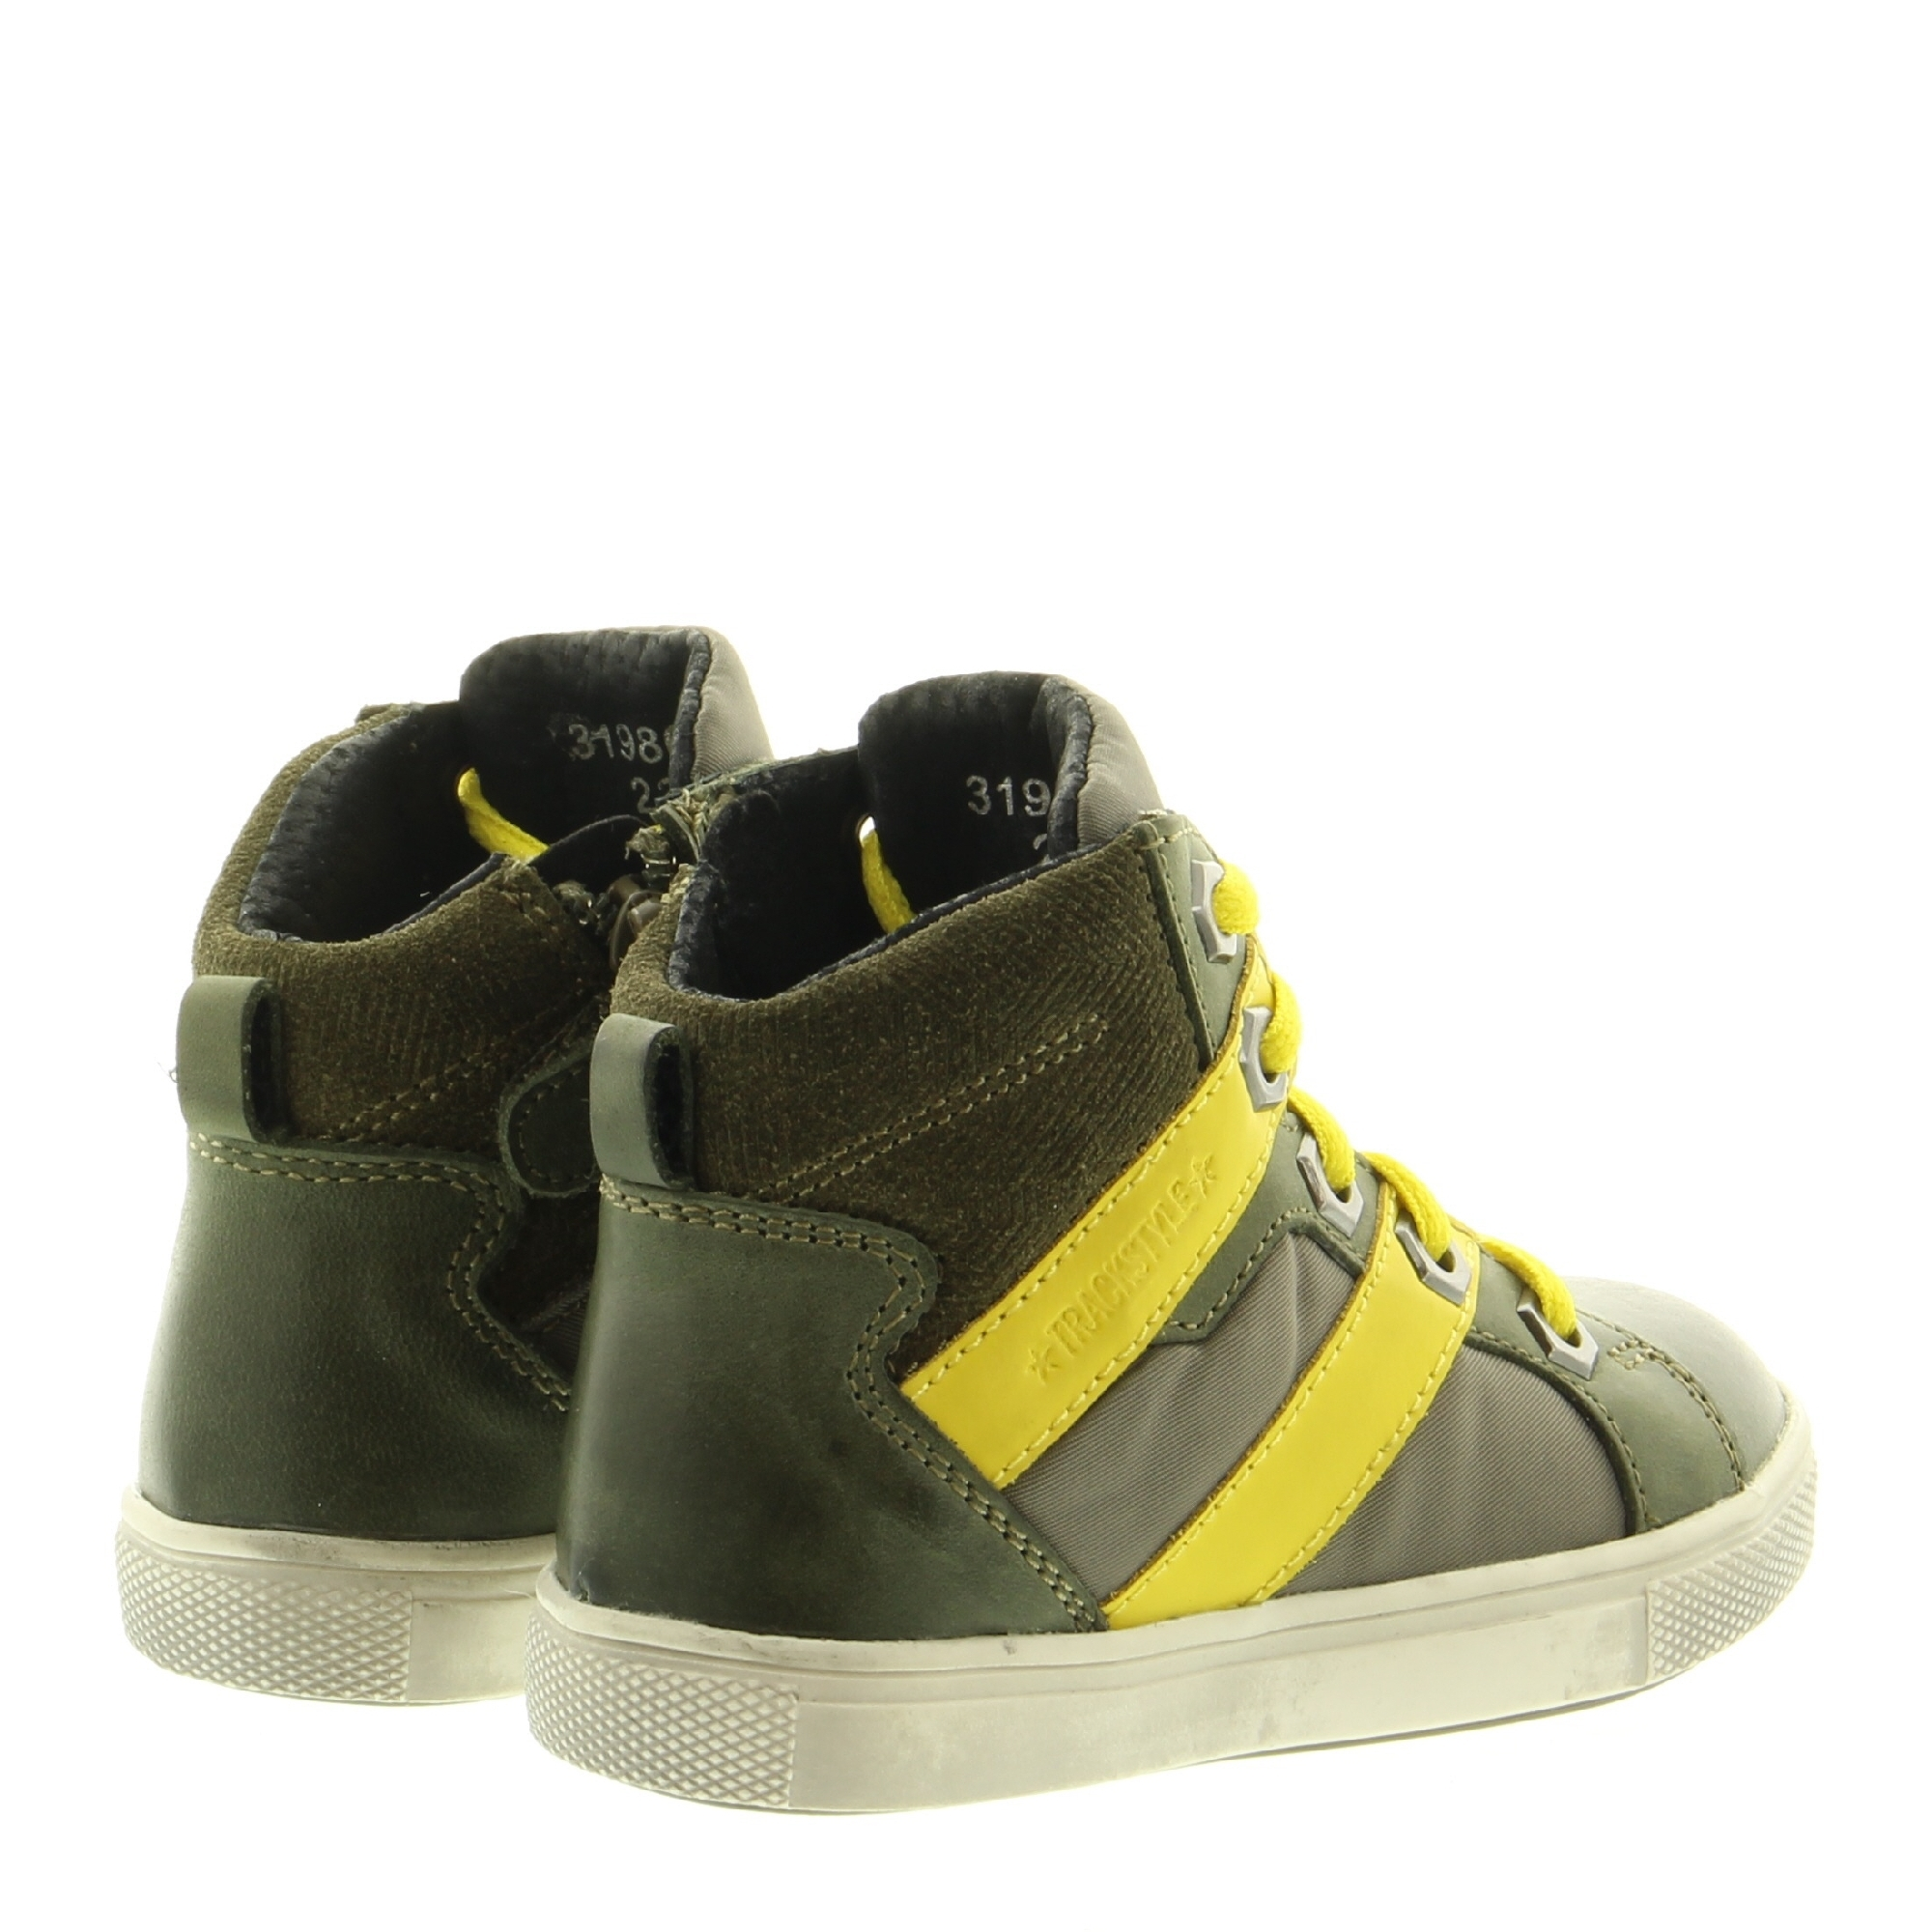 Twins Trackstyle 319800 569 Army Green